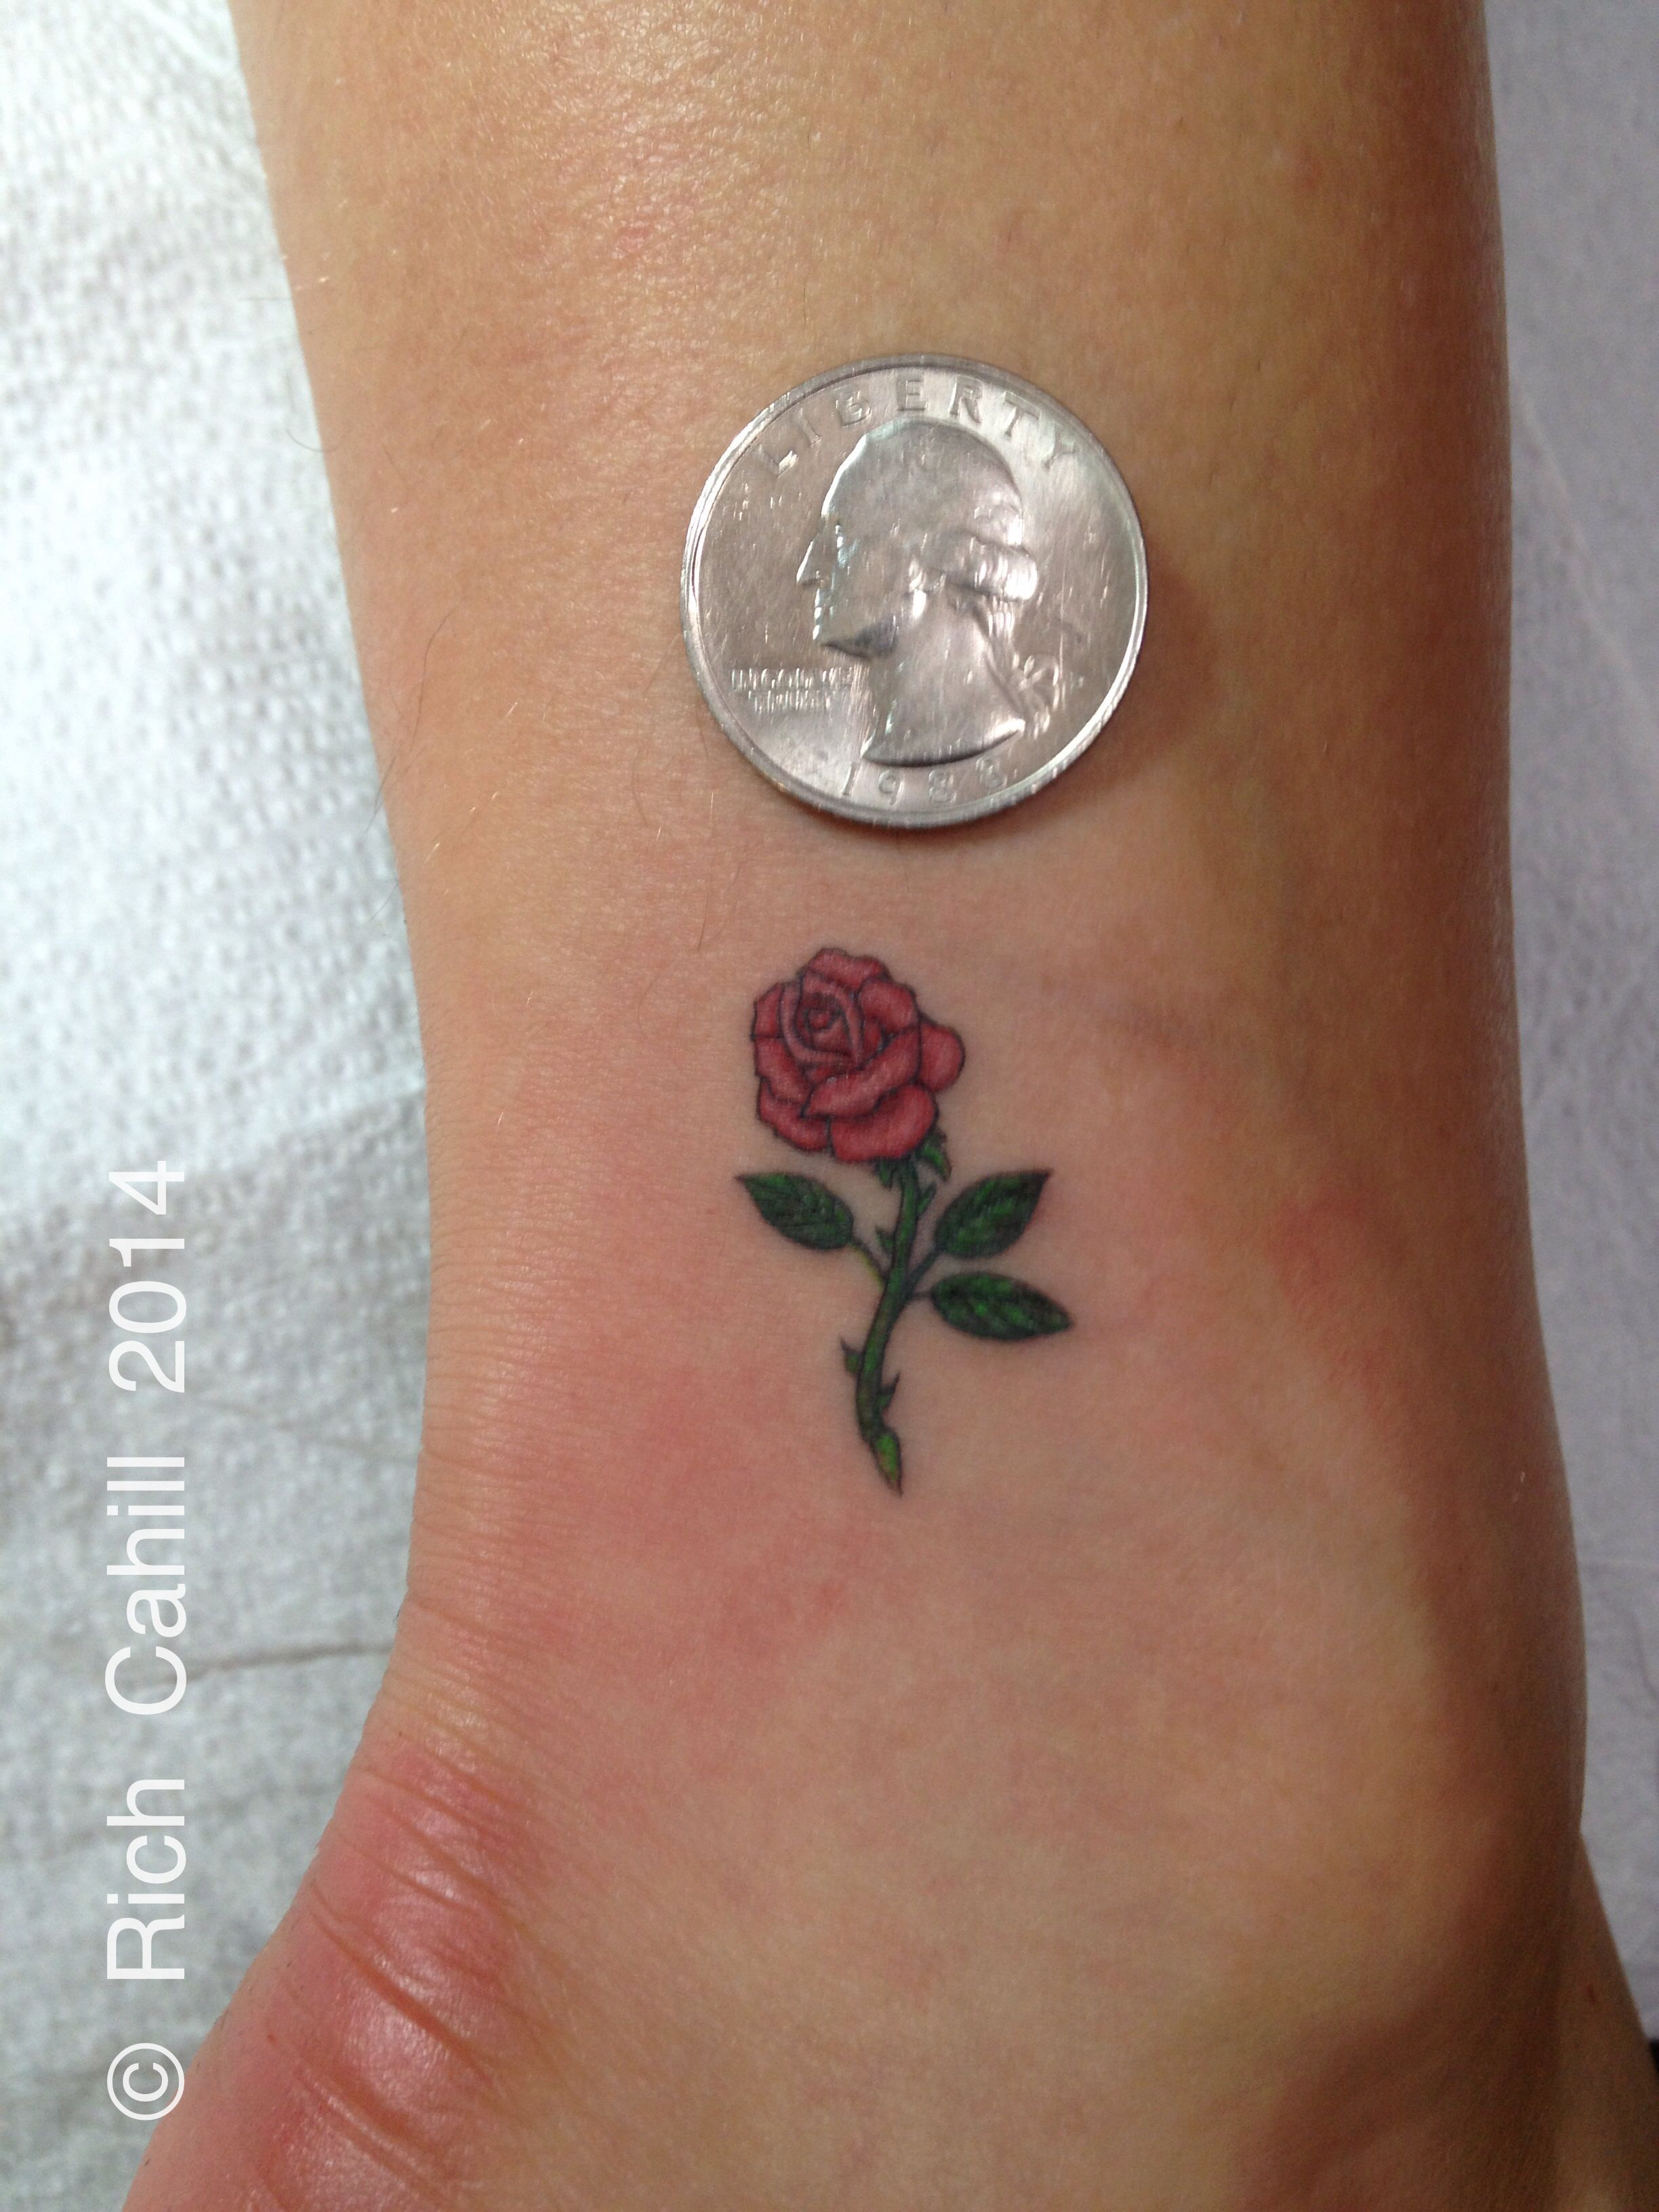 Rich Cahill Nyadorned Micro Rose Tattoo Mini Tattoo Tiny Tattoo Perfect With Images Tiny Rose Tattoos Pink Rose Tattoos Yellow Rose Tattoos